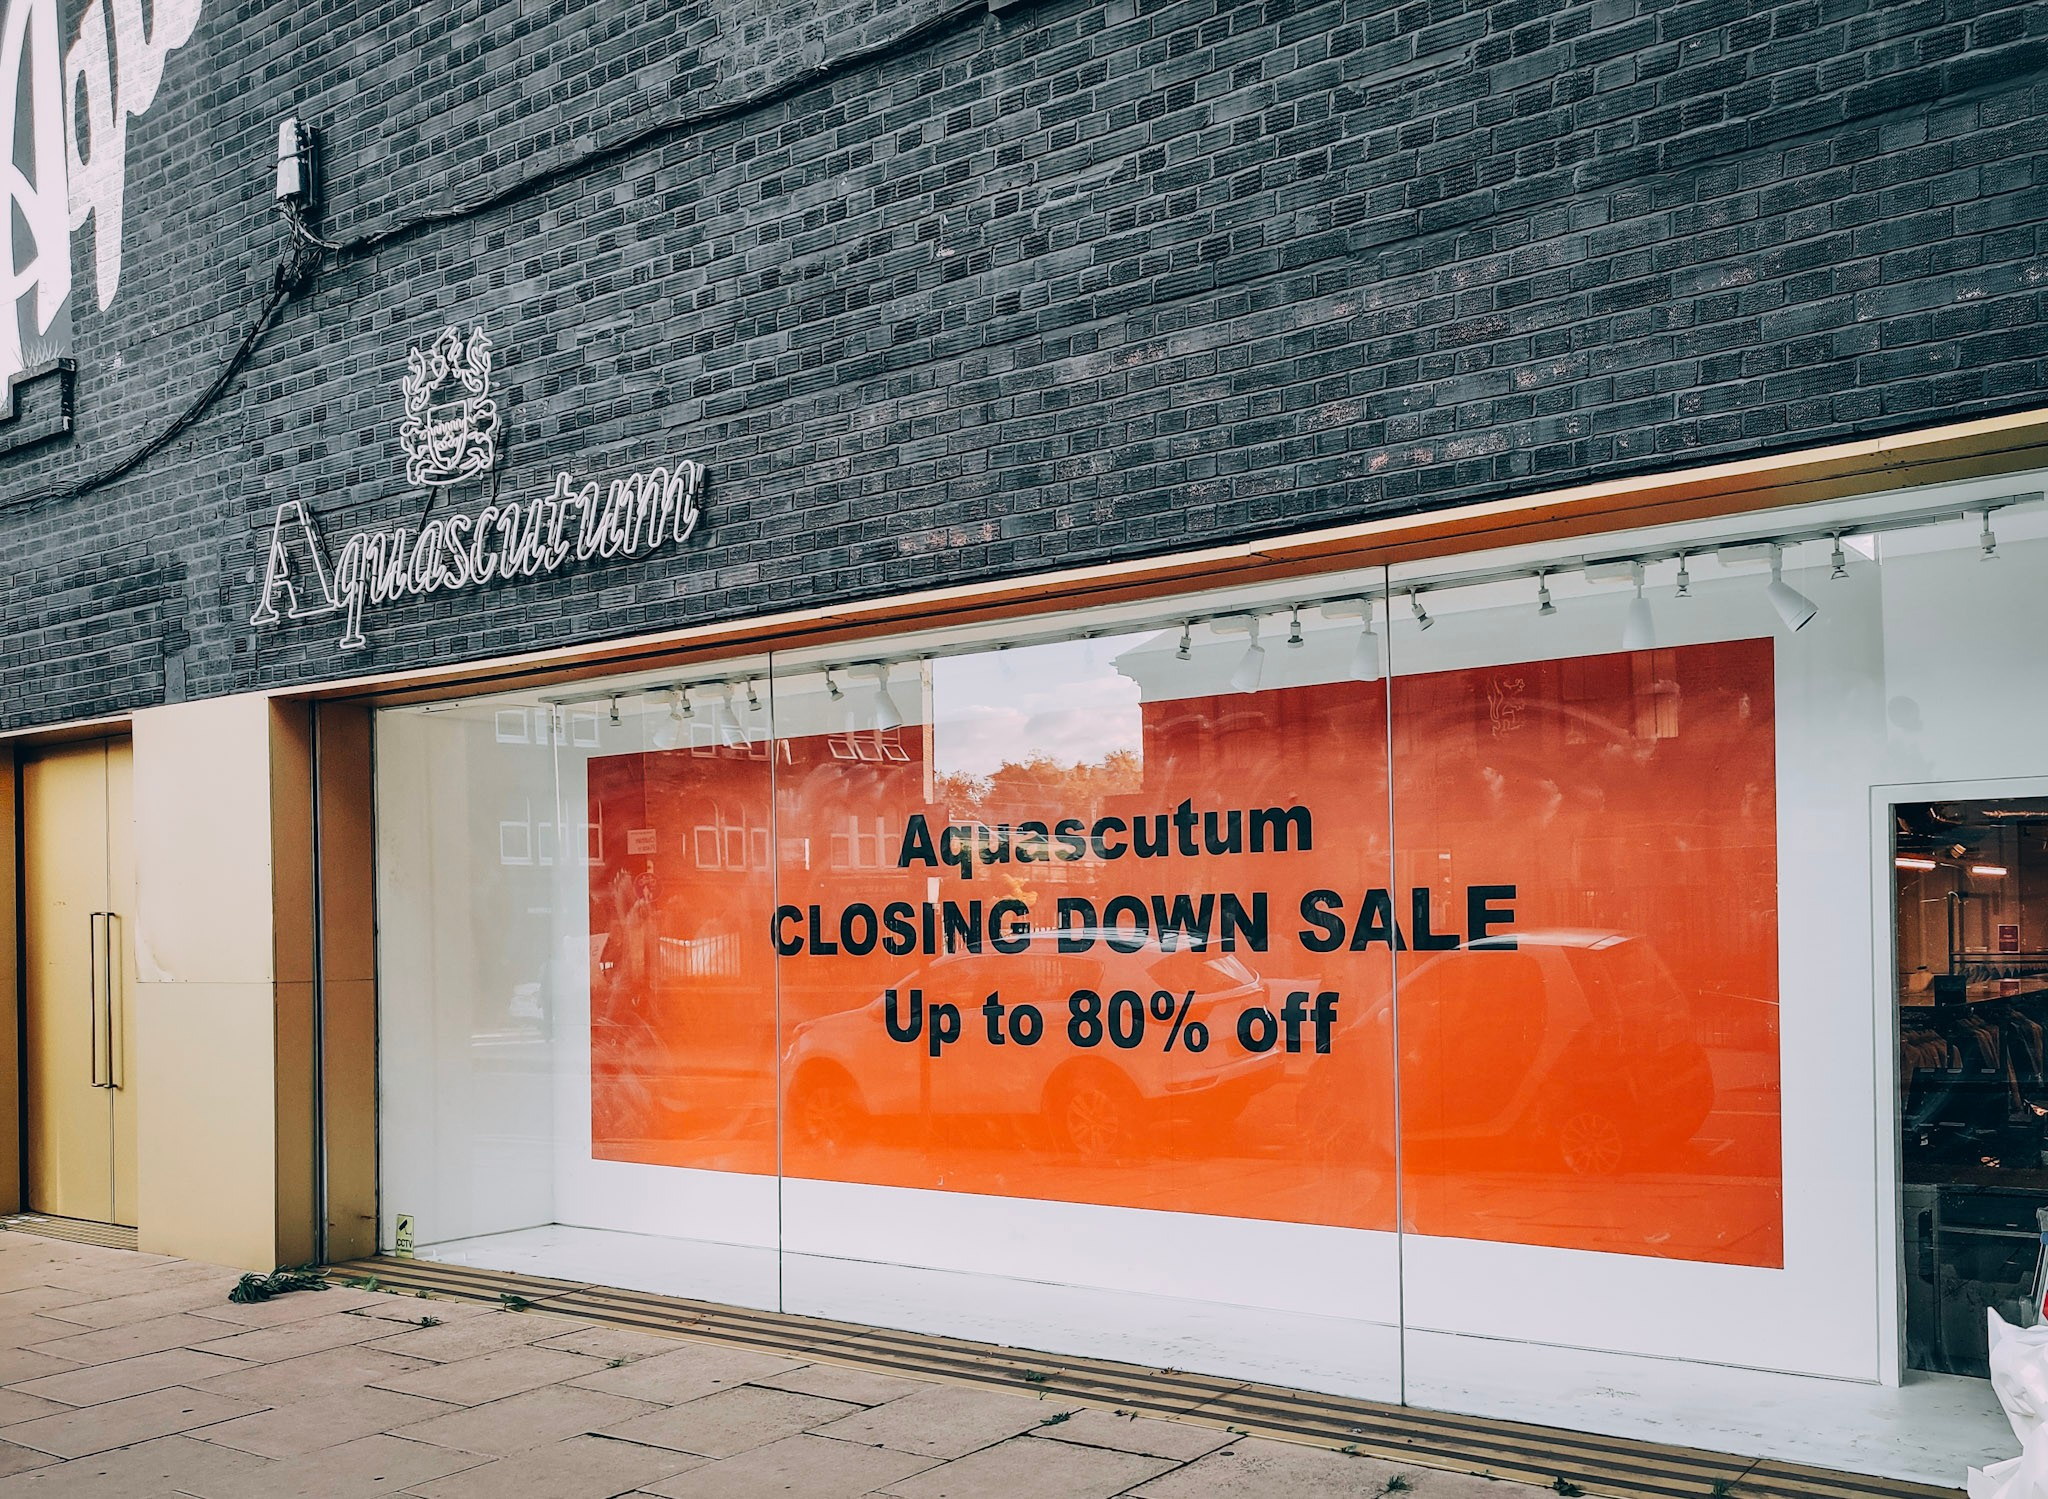 Aquascutum Window Graphics